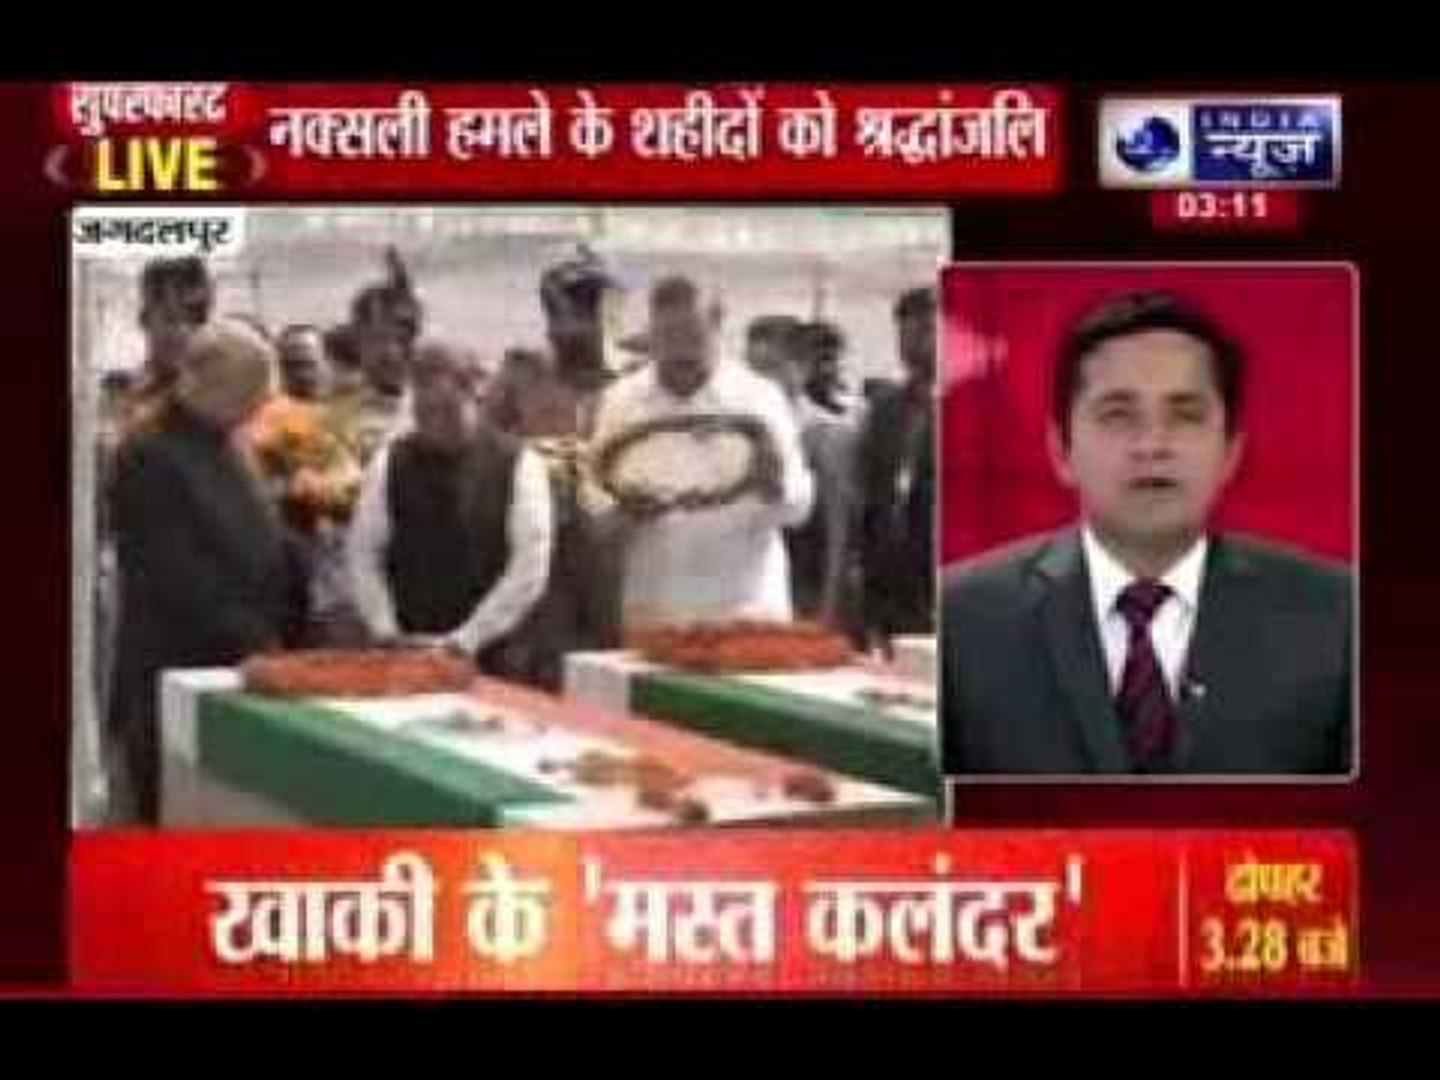 India News: Superfast 100 News on 12th March 2014